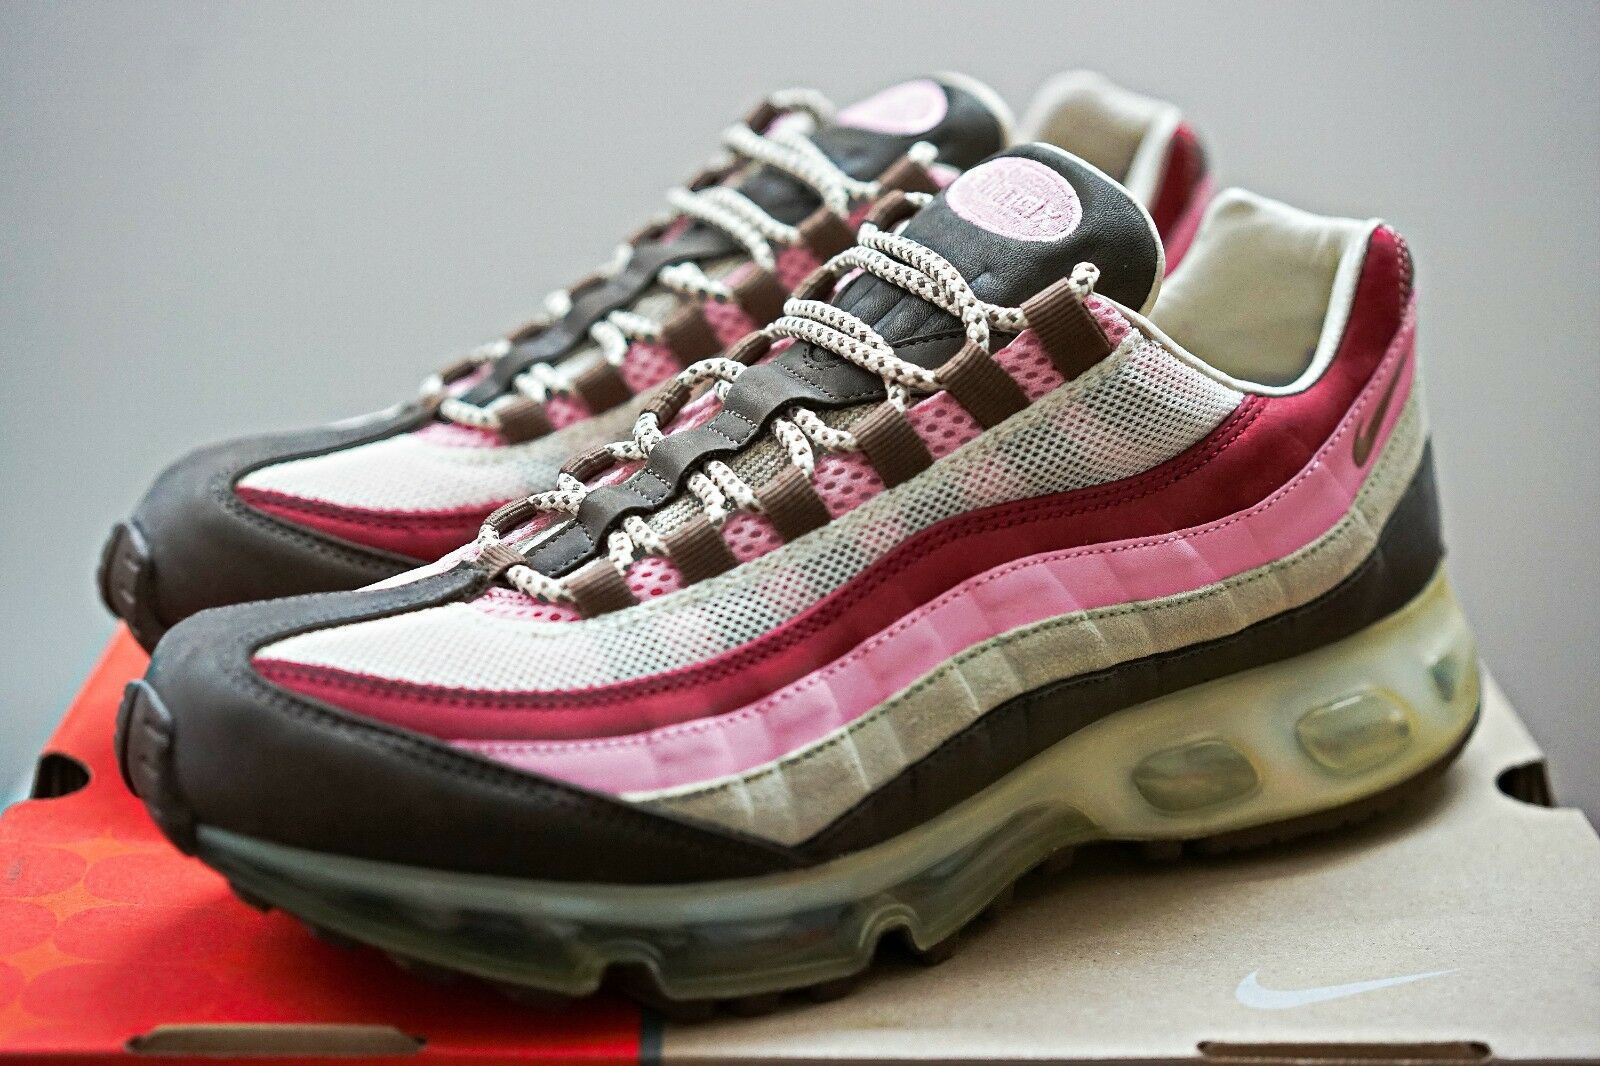 Nike Air Max 95 360 DQM One Time Only Clerks Pack 2006 Gr. 44 US 10 Powerwall 90